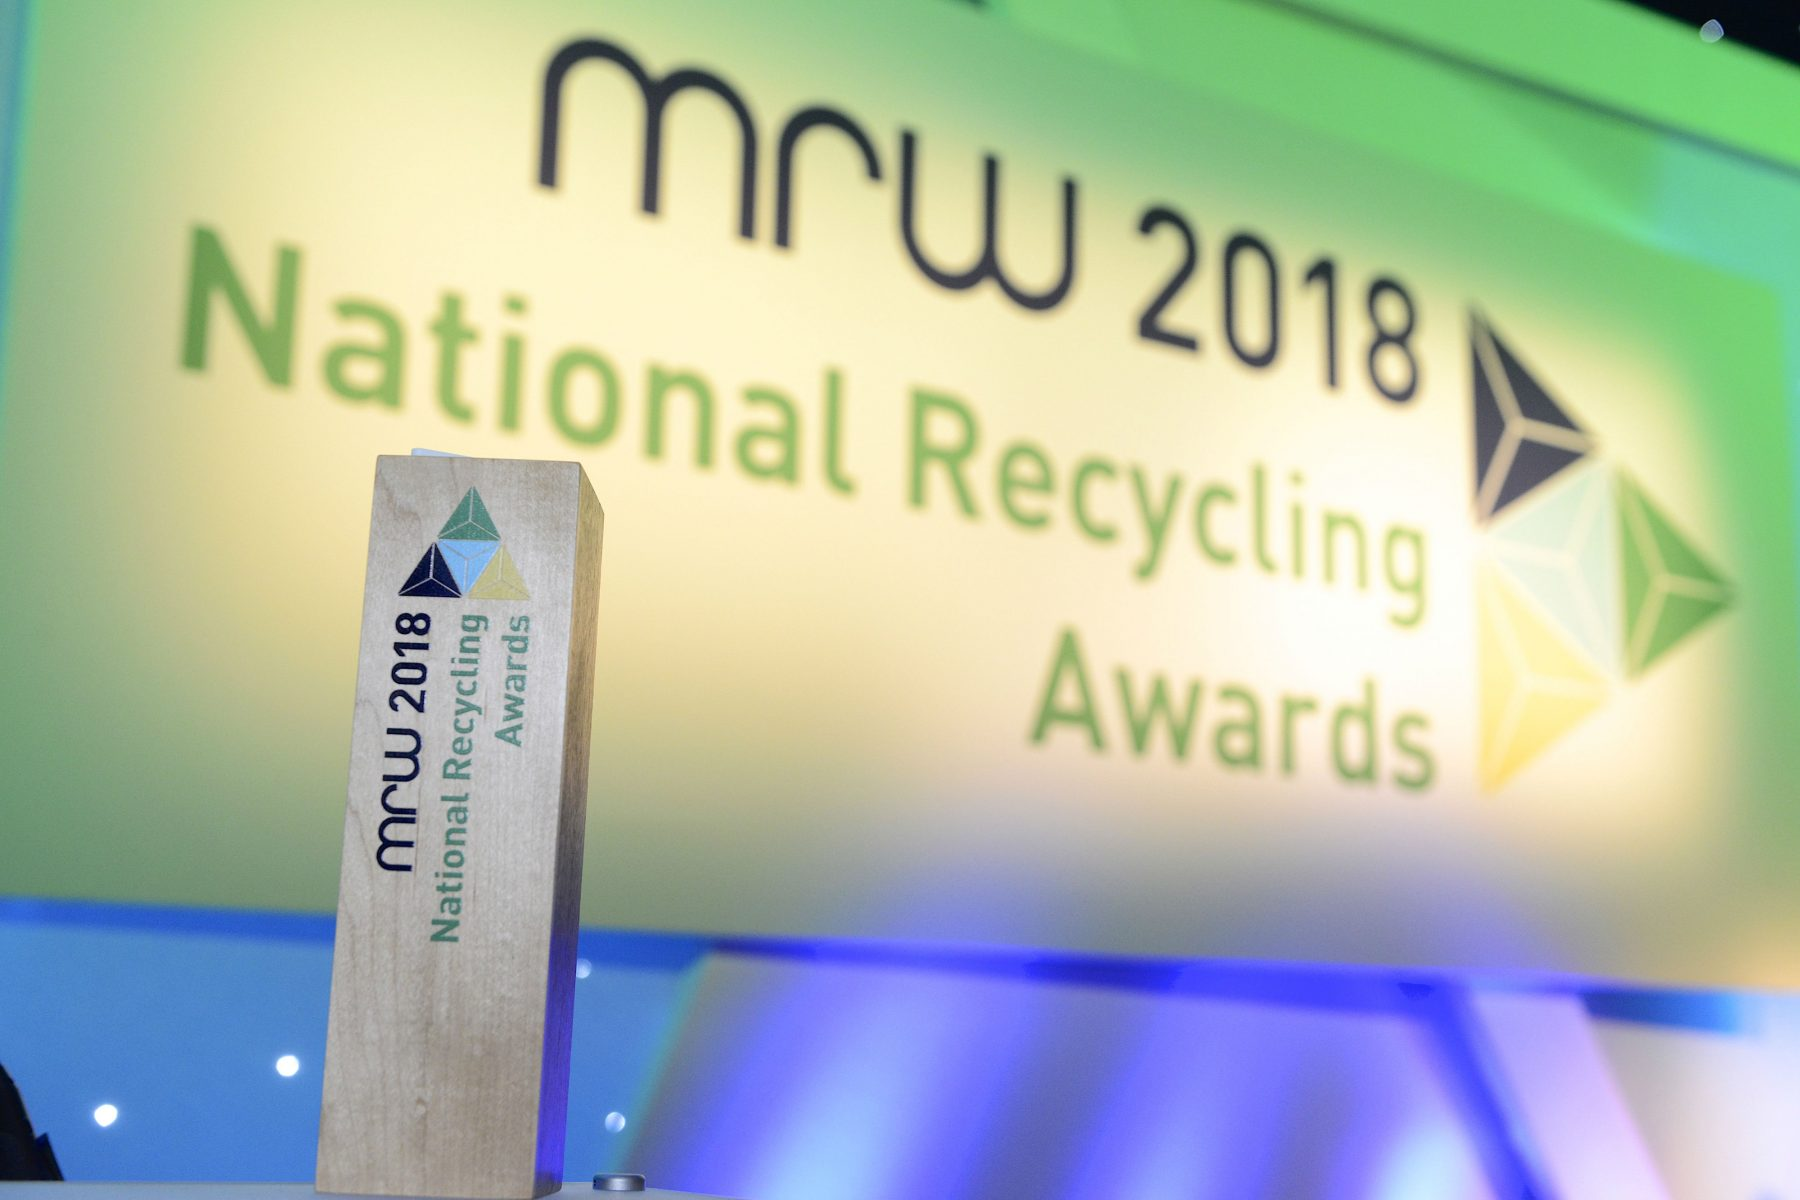 national recycling awards